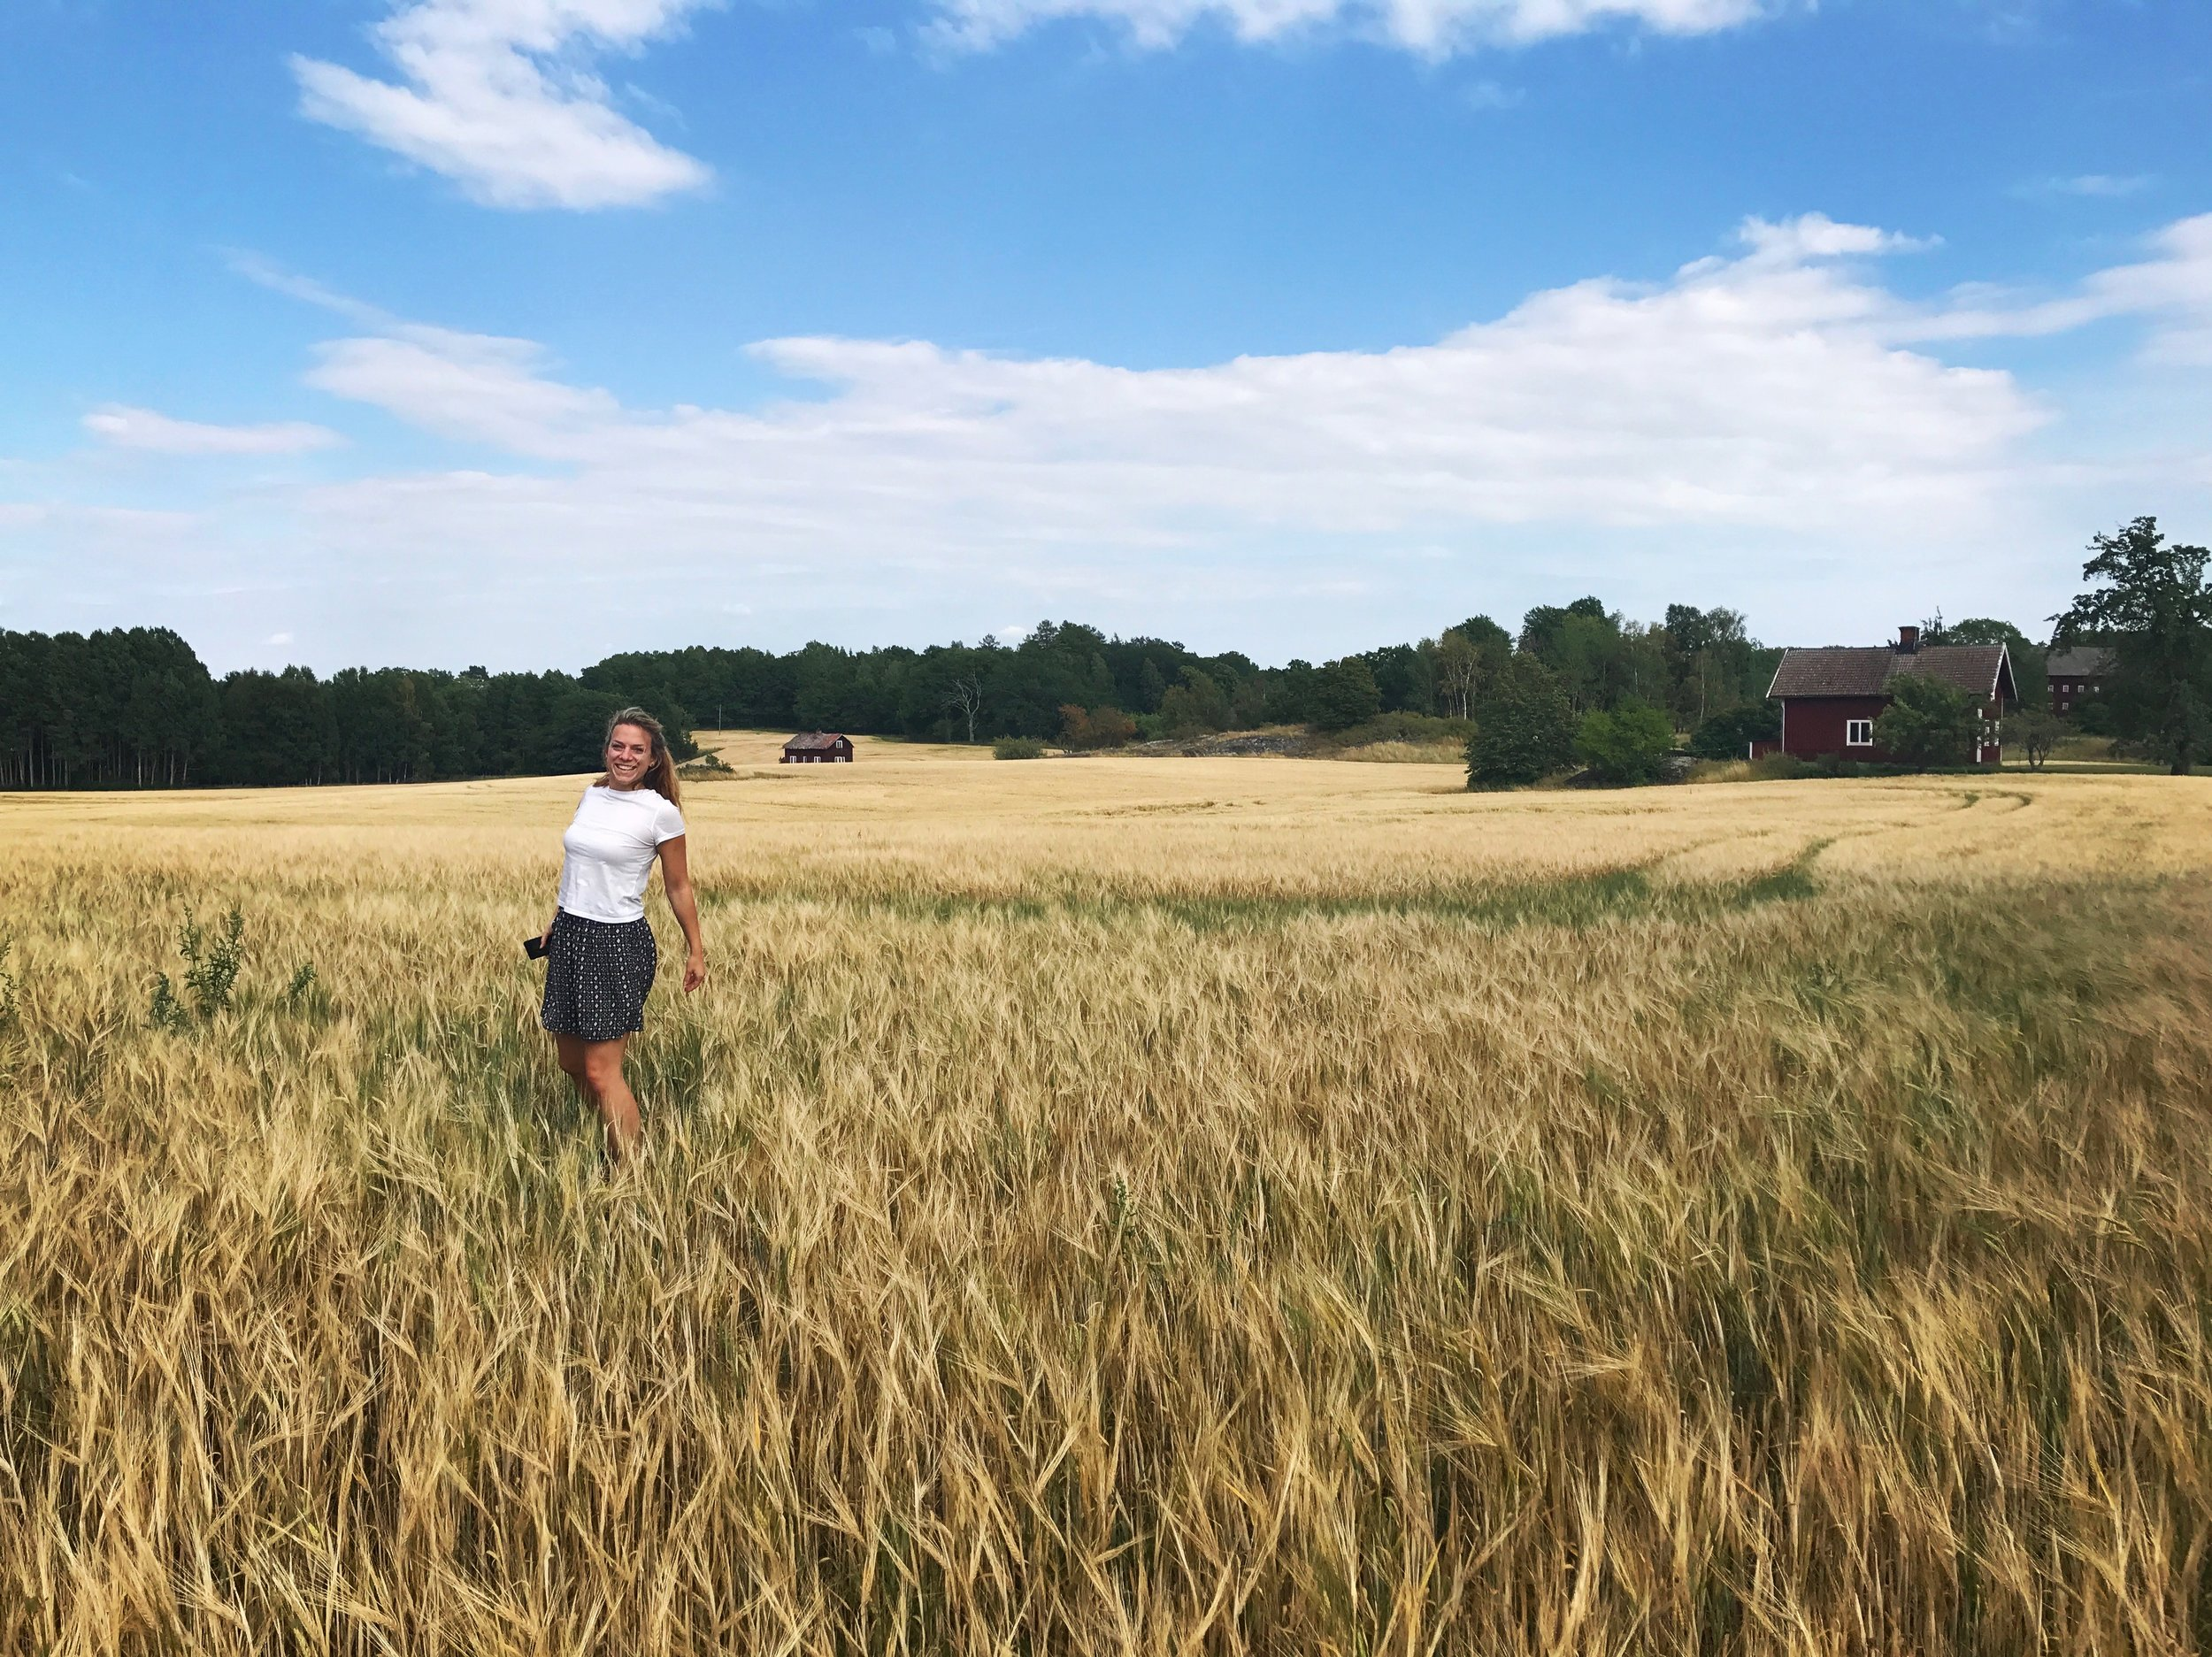 In the fields outside Jennifer Jansch Summer House in Sweden after a Bag-All Conference